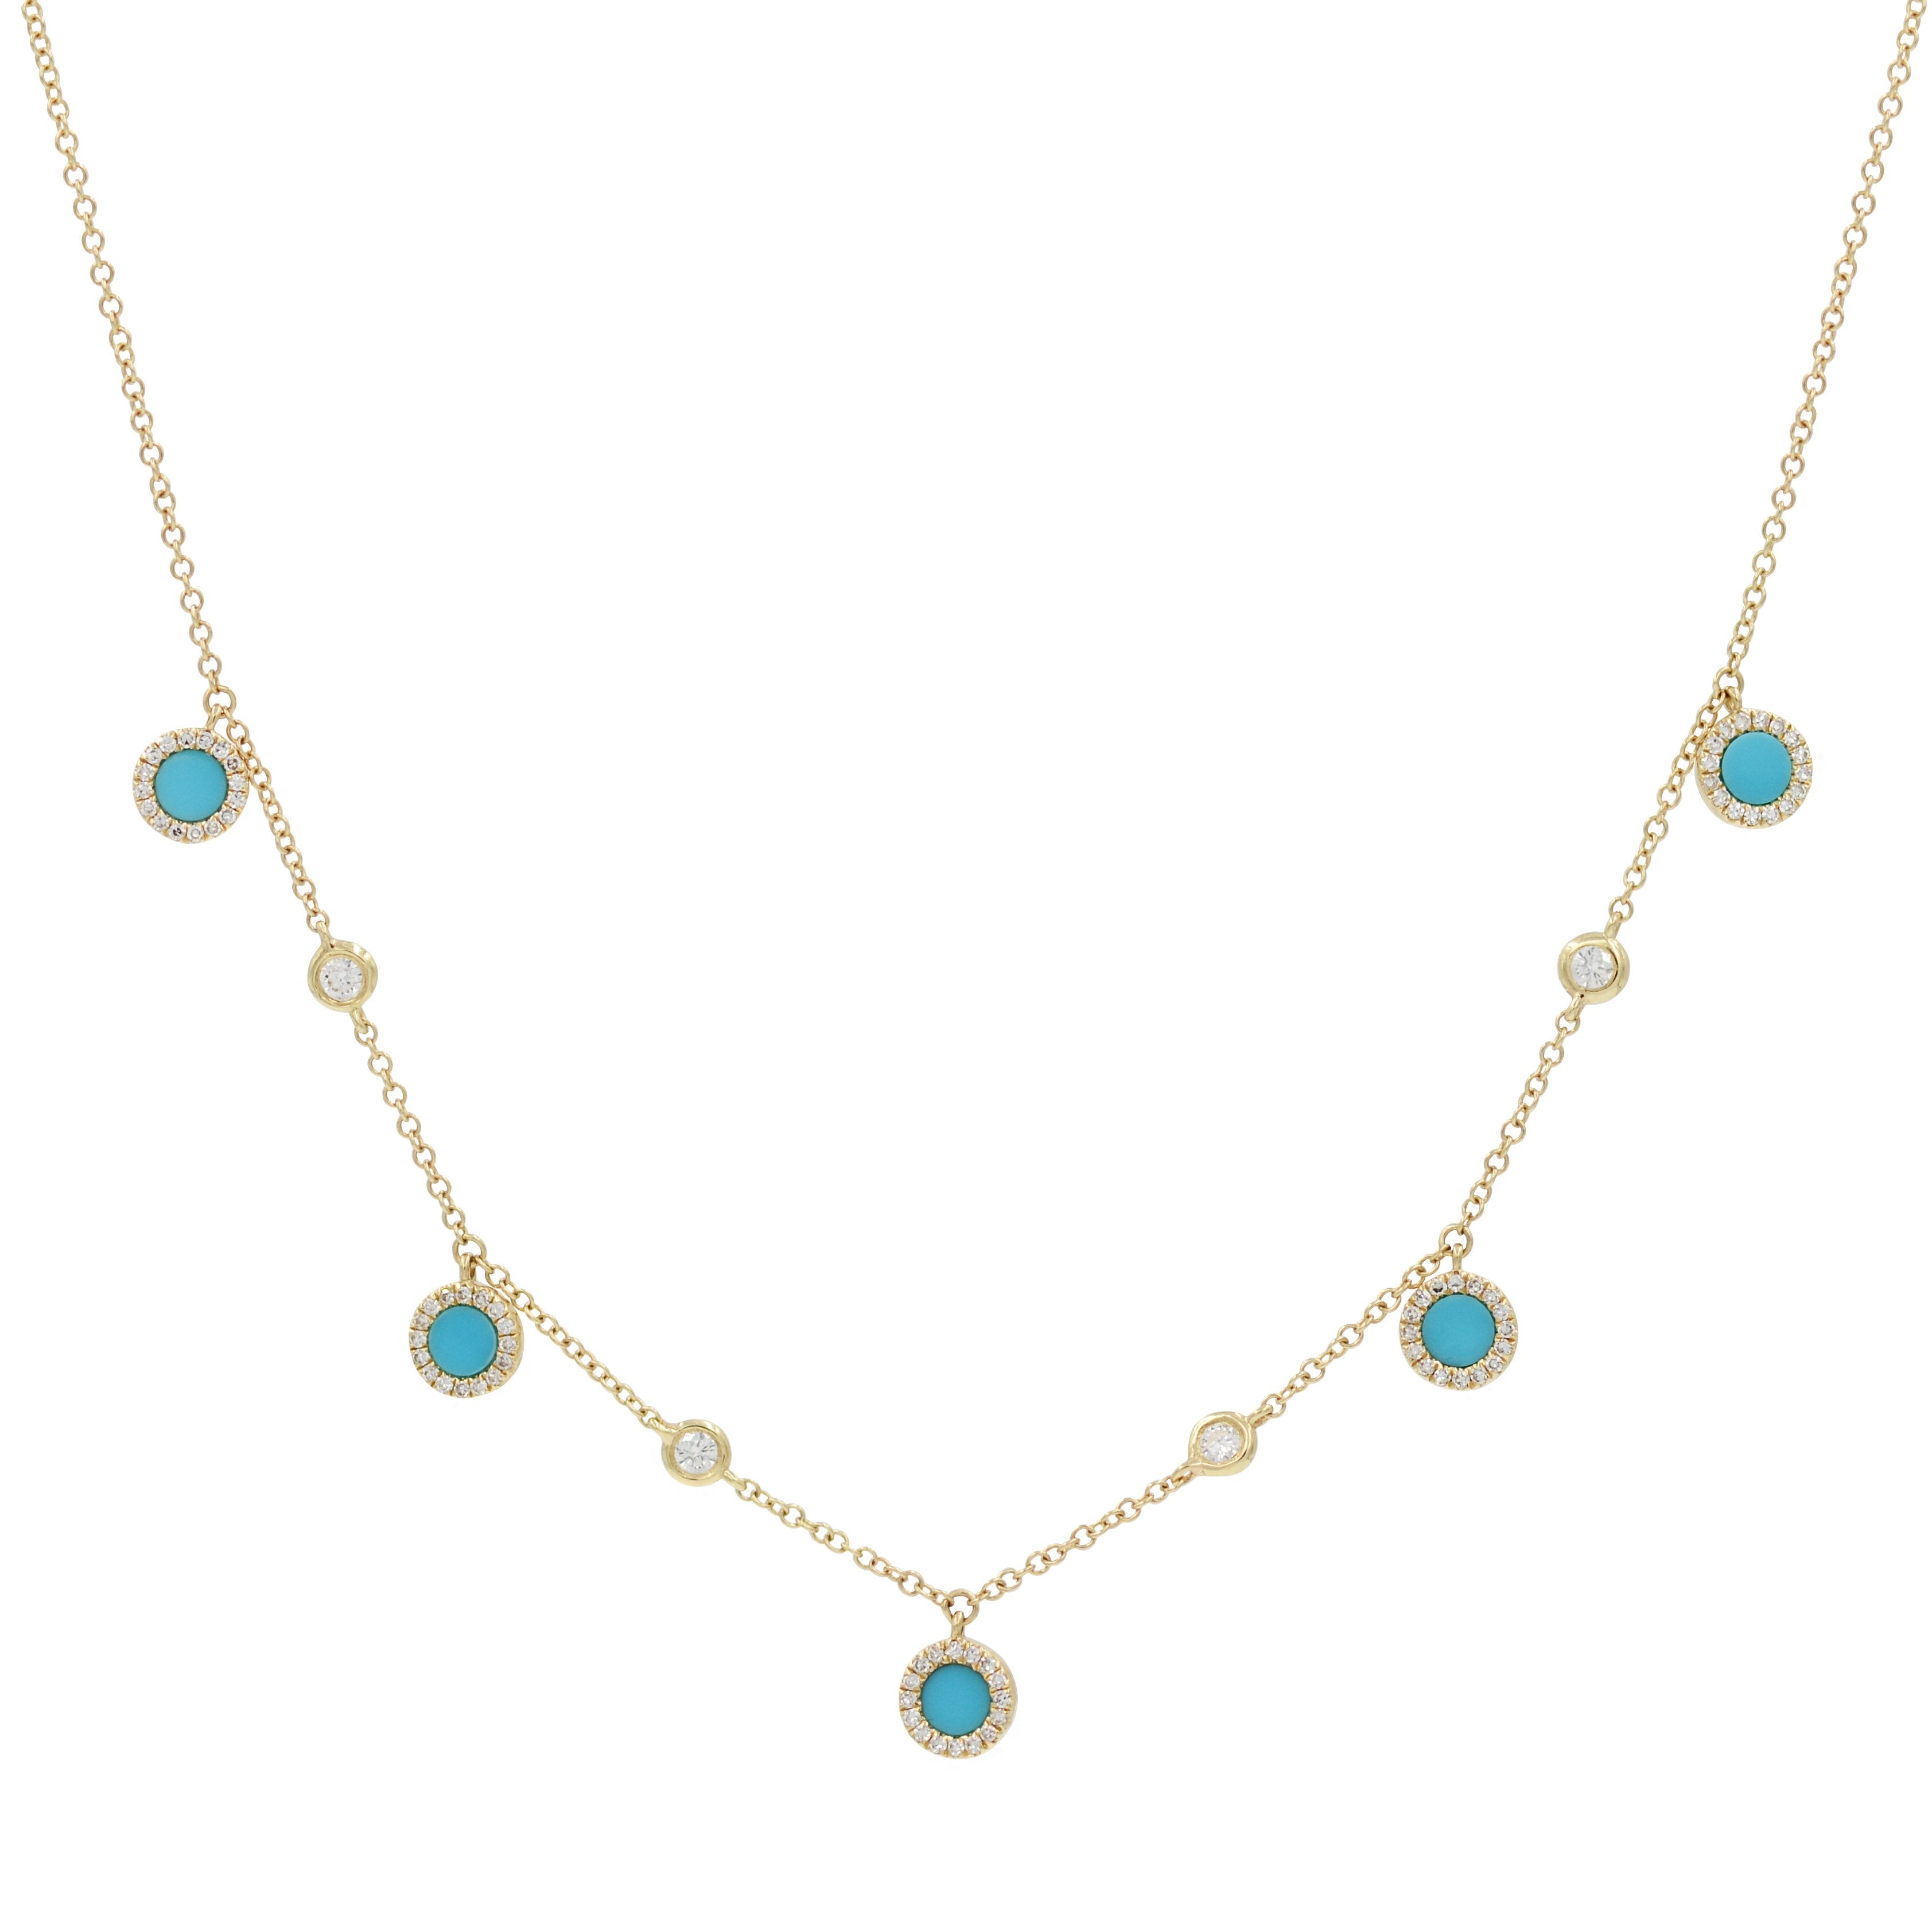 Turquoise Diamond Choker Necklace in 14k Gold